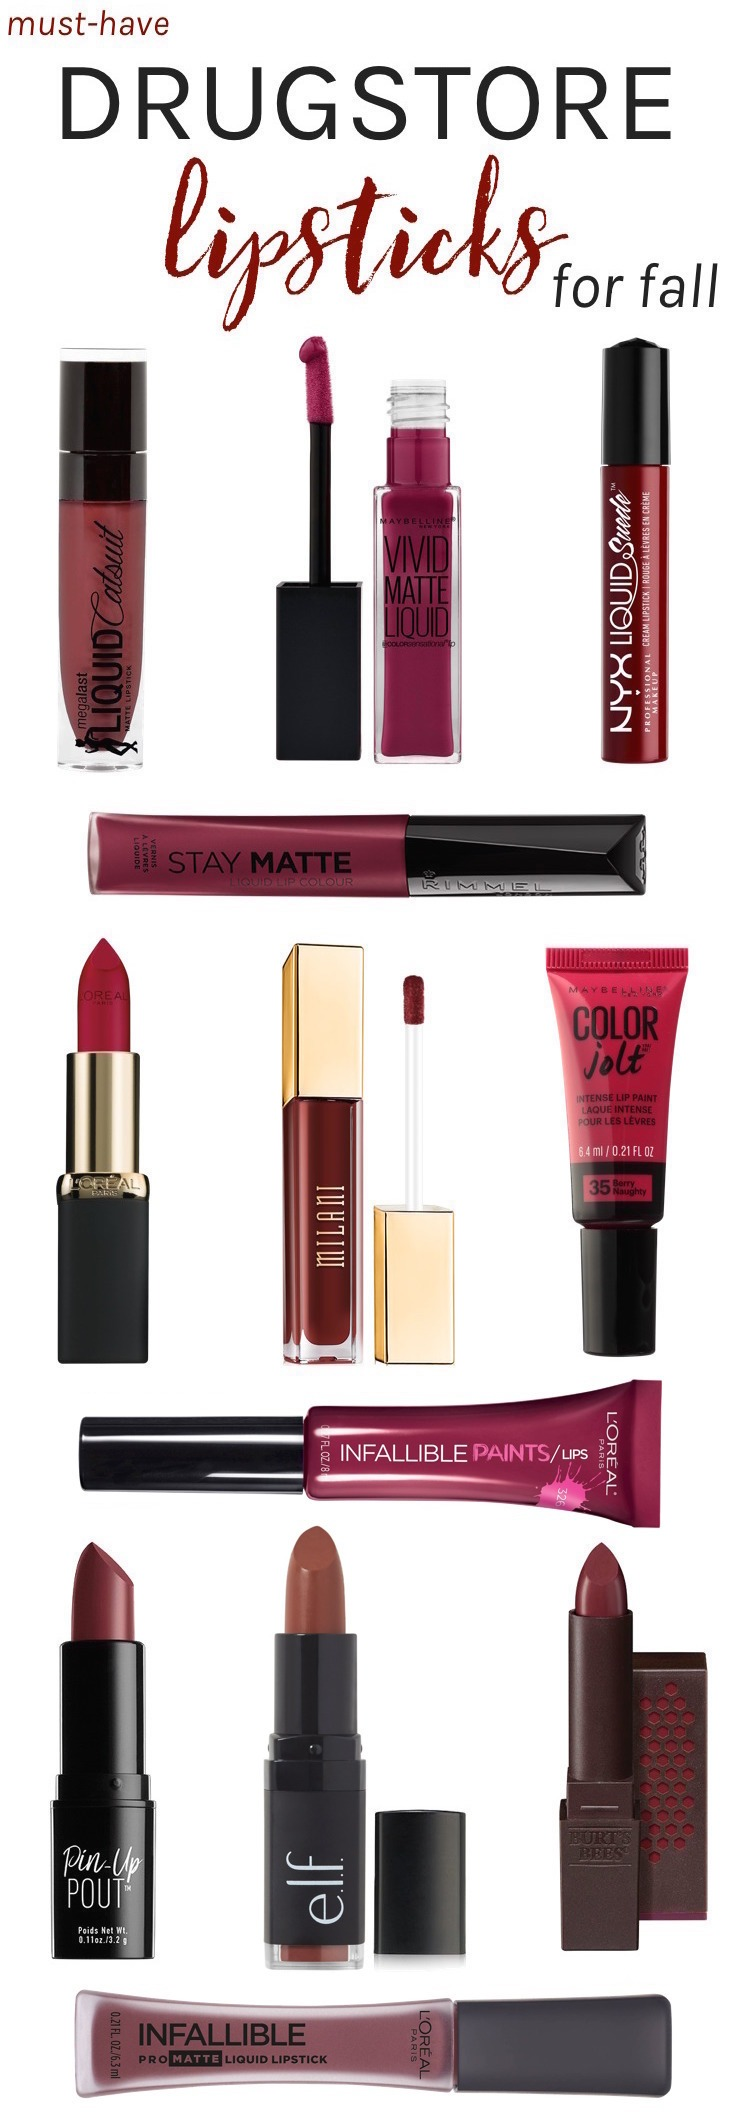 Fall calls for a switch to moody, darker colors, and what better way to create bold looks than with perfectly painted lips! Here are the best drugstore lipsticks for fall and winter, that you'll want to stock up on!